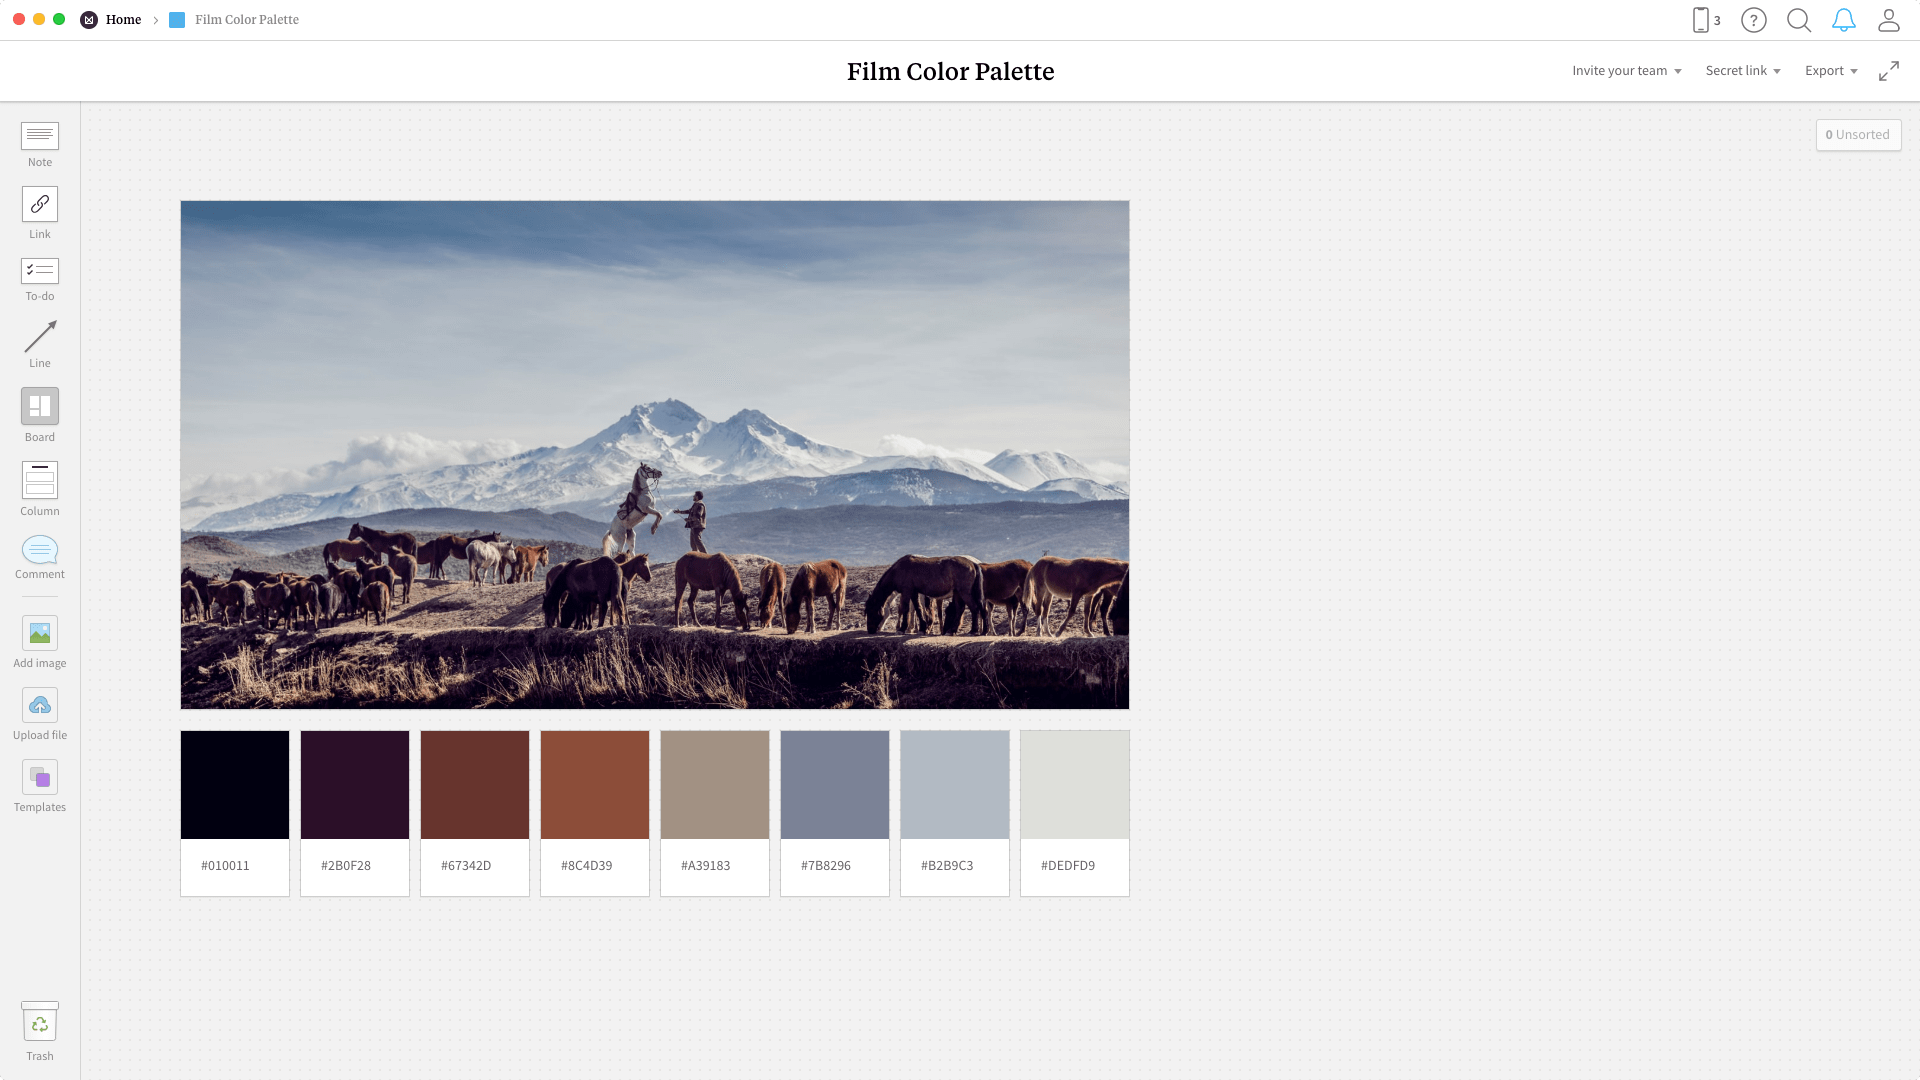 Completed Film Palette template in Milanote app